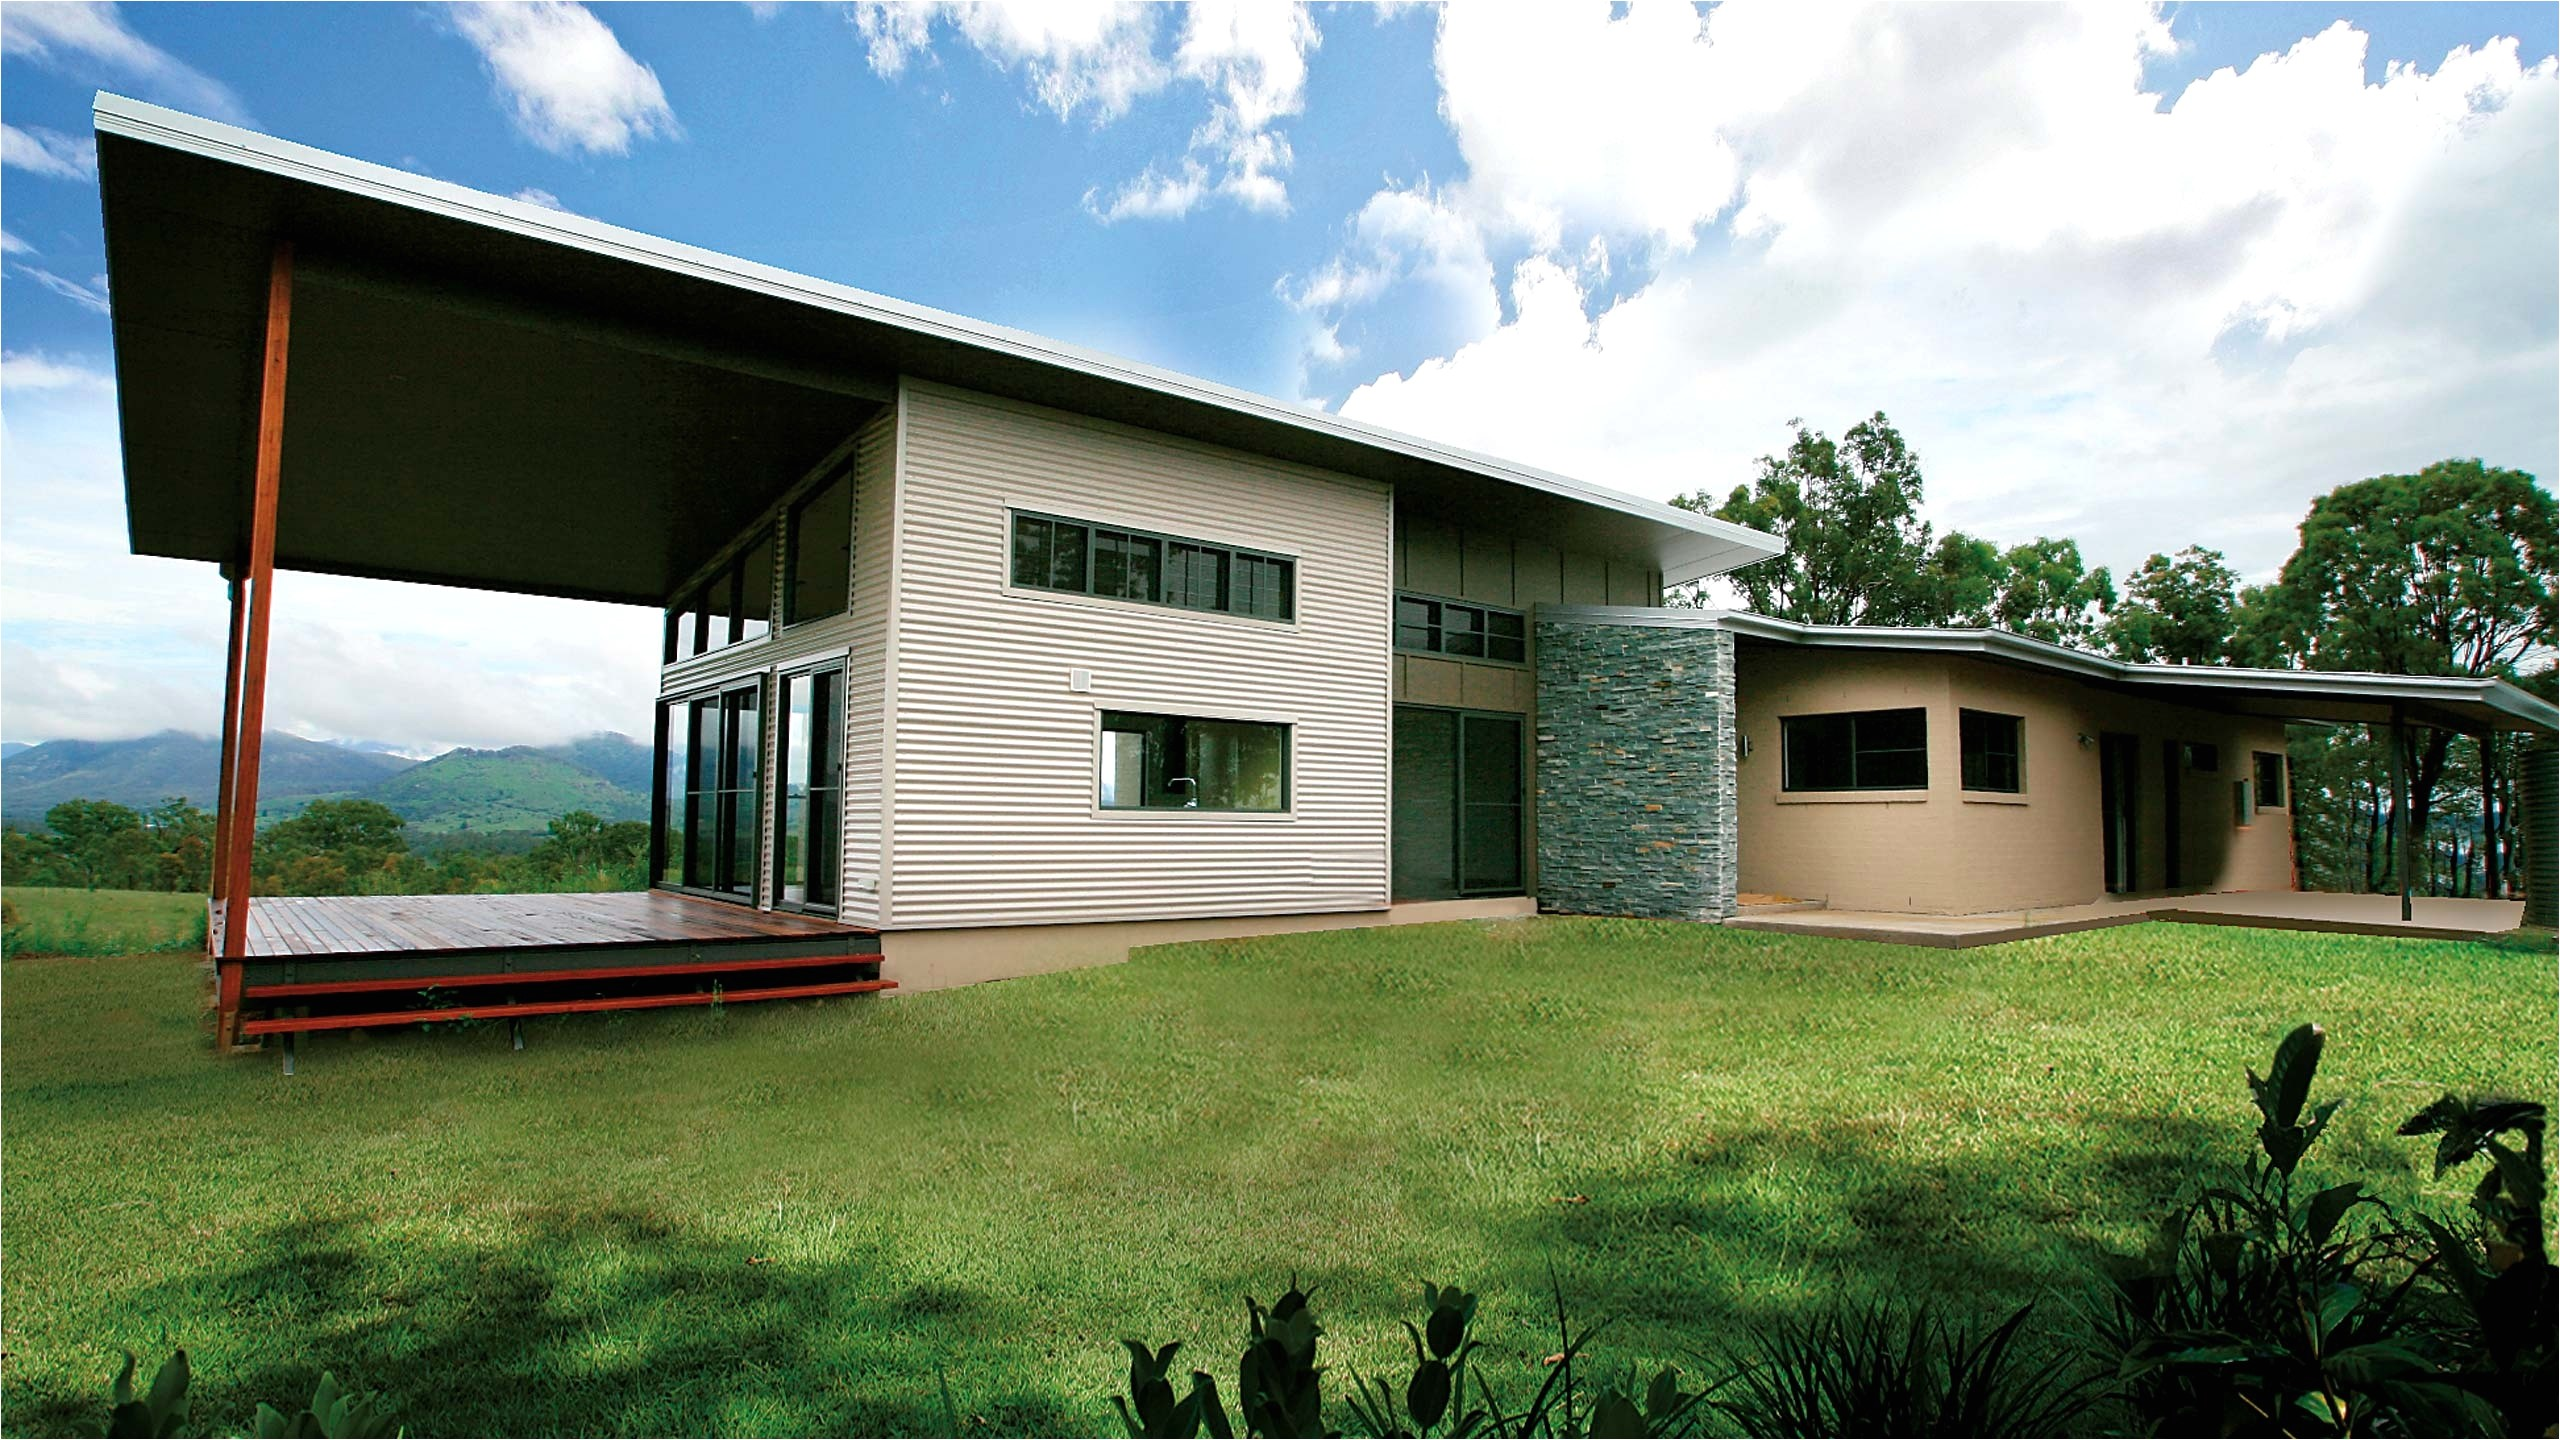 house plans for rural properties best of romantic zimbabwe rural house plans arts inspiring home designs